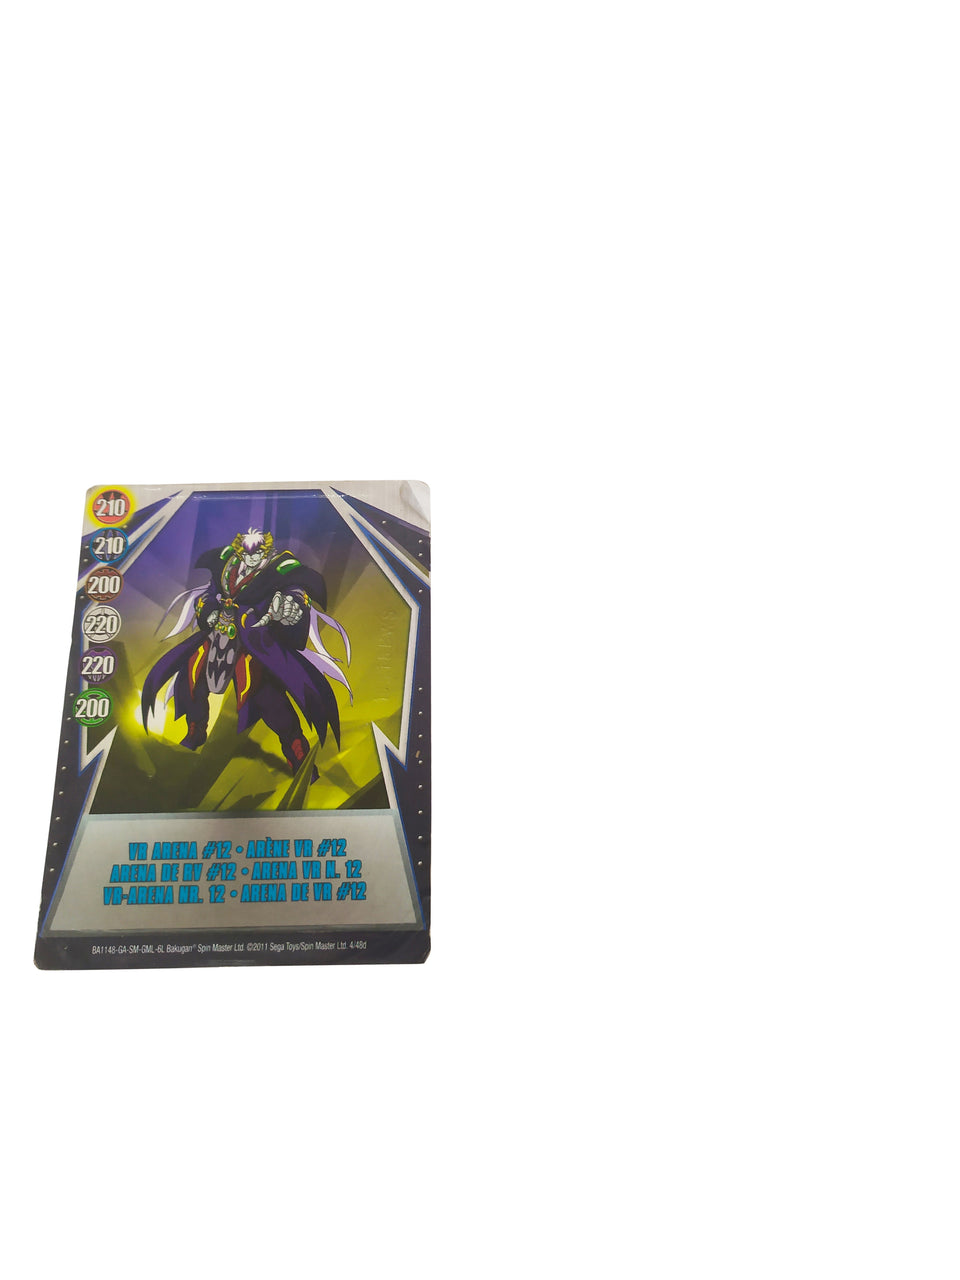 BAKUGAN BATTLE BRAWLERS - COLOR RED- special , 2011 , vr arena